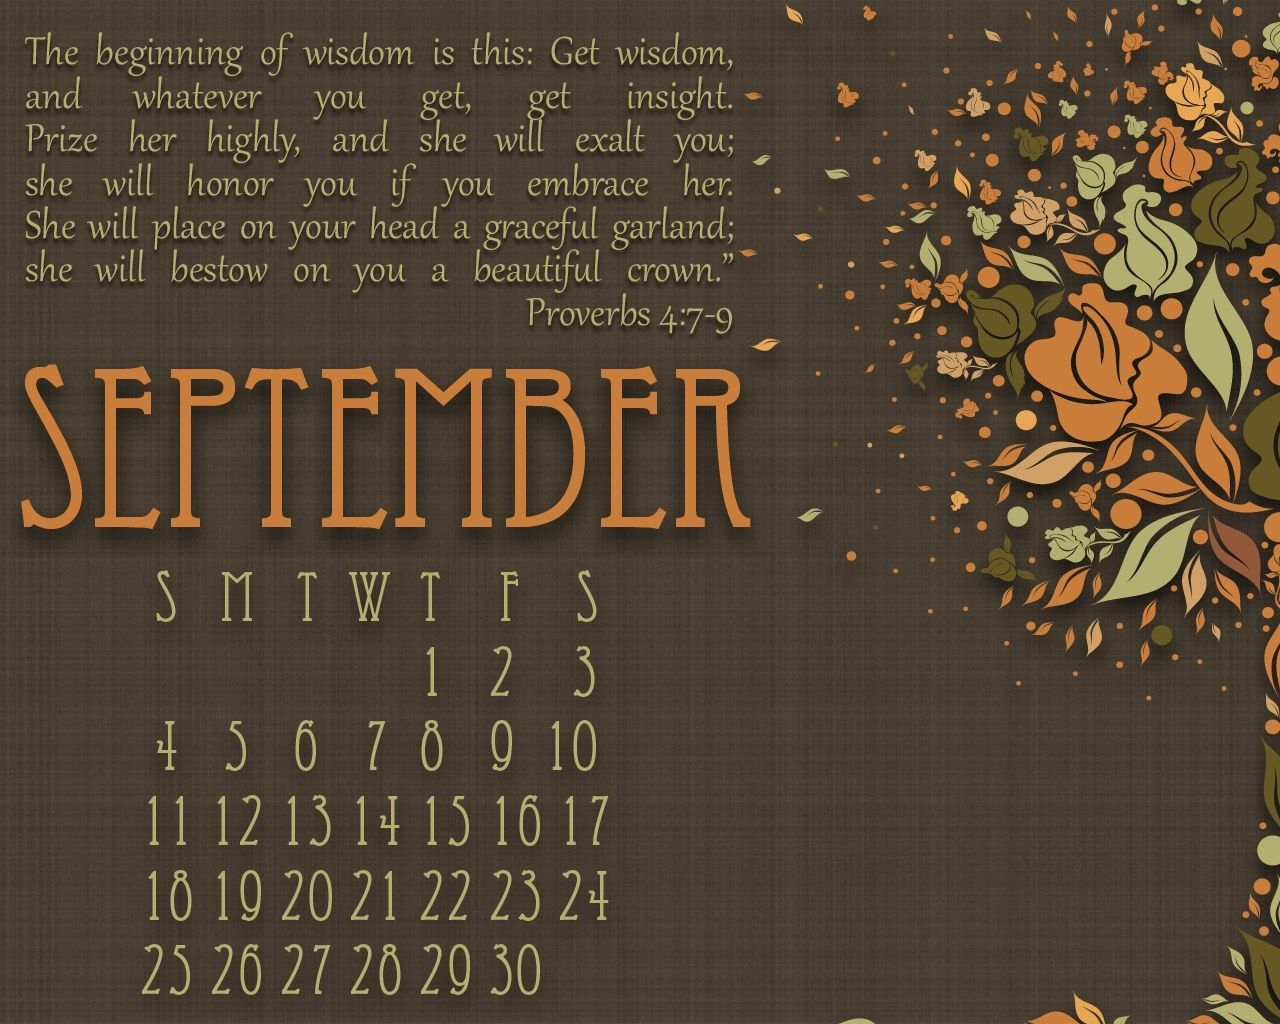 September Bible Quotes